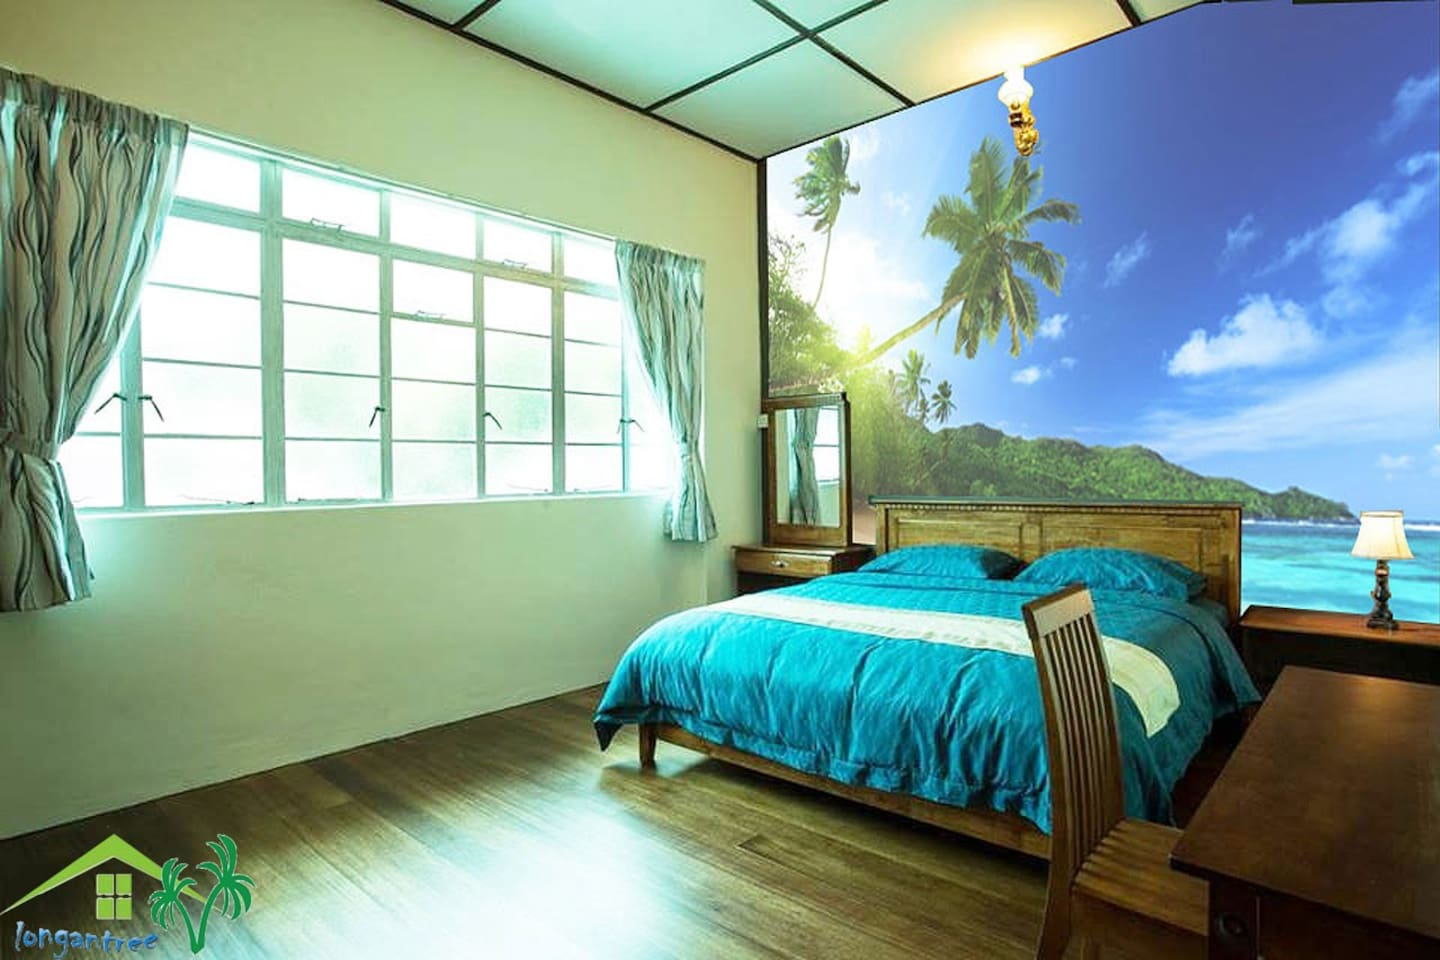 1. 8*2.0 Big double bed, spacious room, nice view outside.